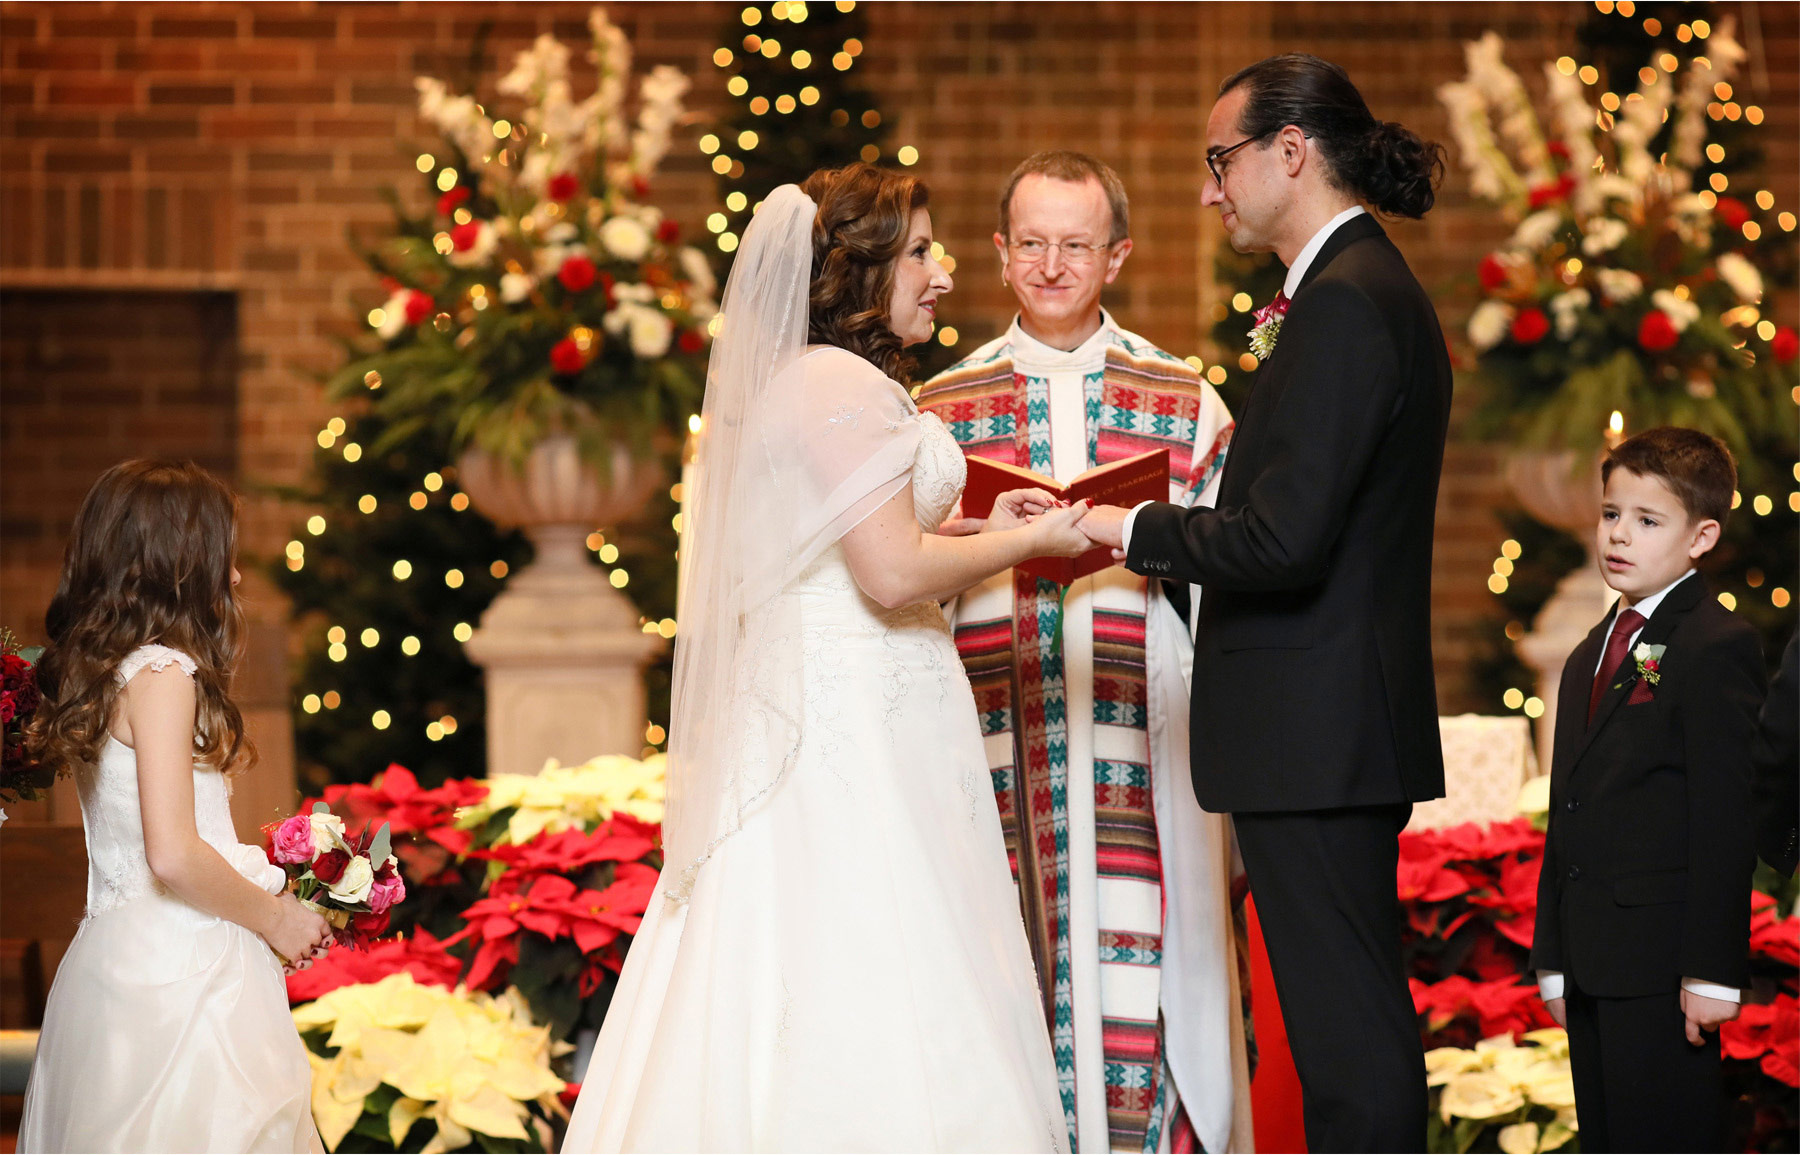 13-Edina-Minnesota-Wedding-Photographer-by-Andrew-Vick-Photography-Winter-Saint-Patricks-Catholic-Church-Ceremony-Bride-Groom-Rings-Elizabeth-and-Brian.jpg.jpg